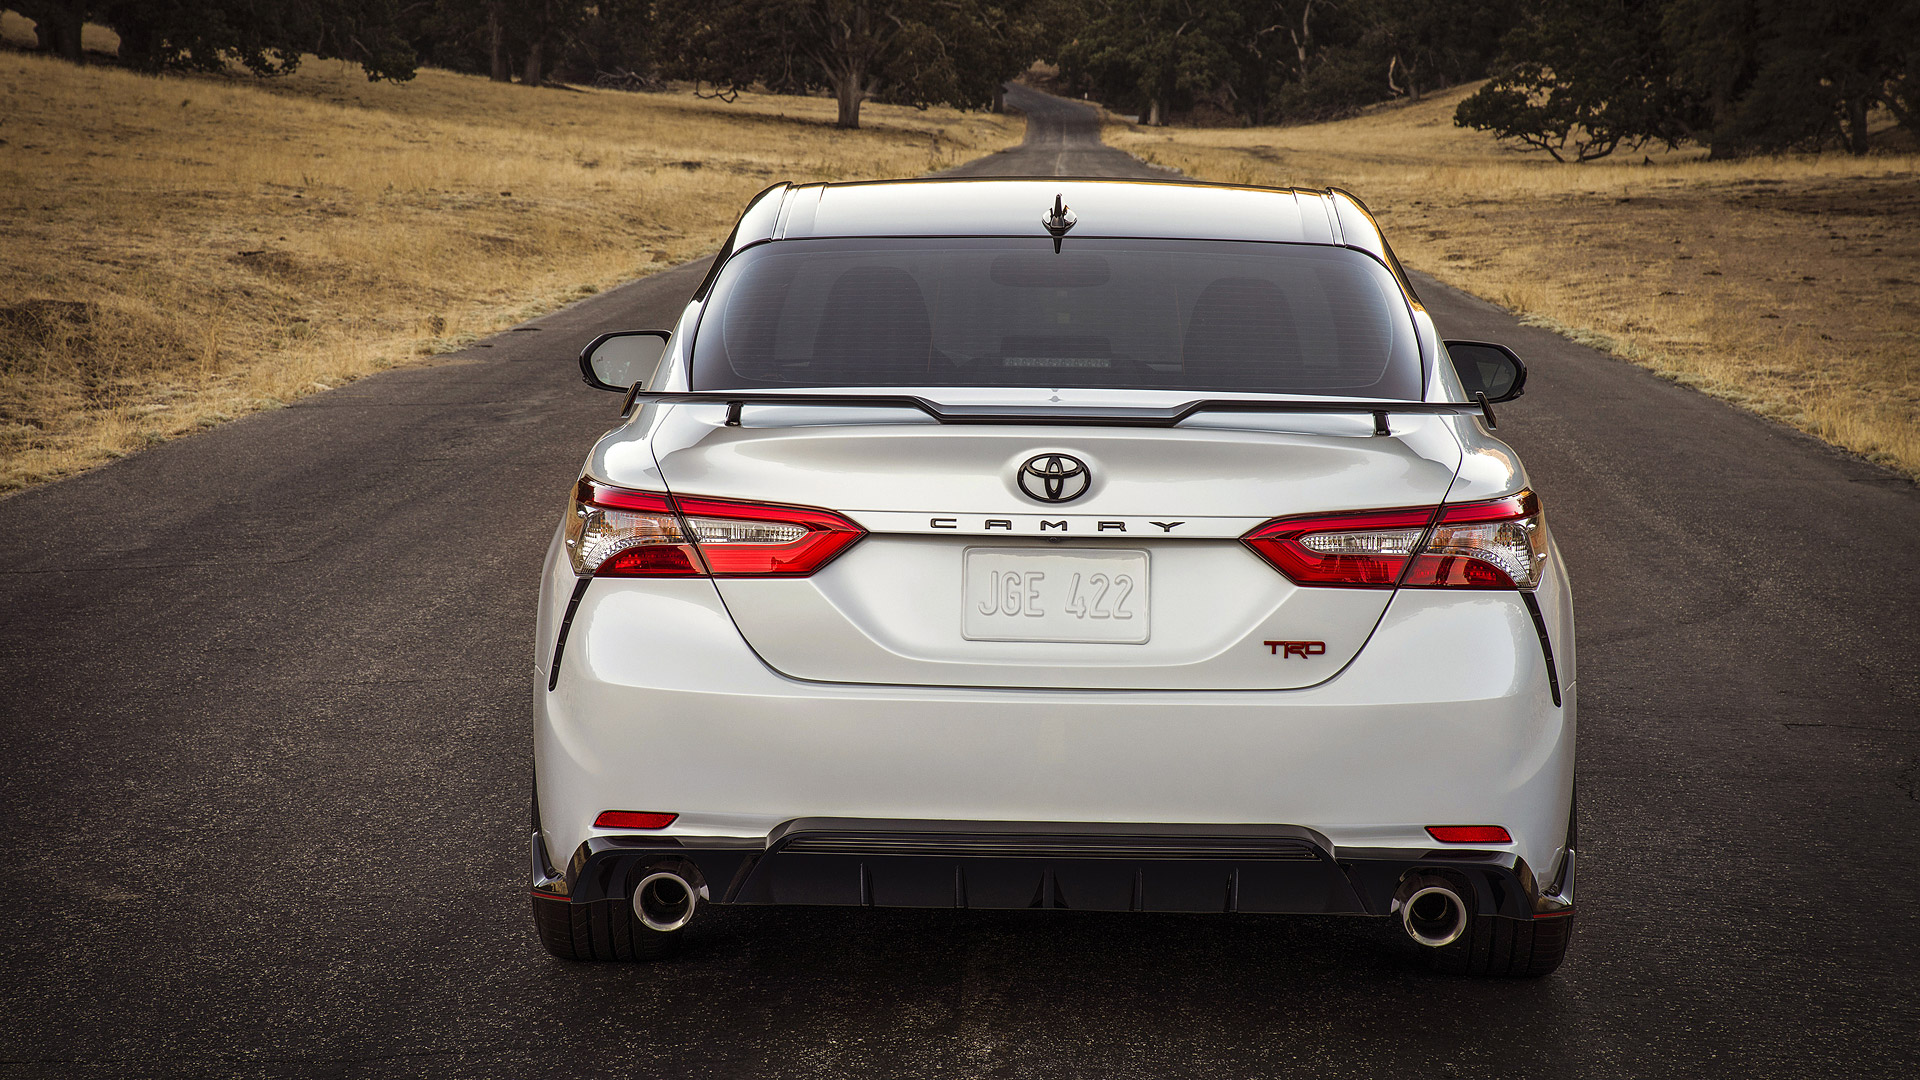 Toyota Camry Wallpapers